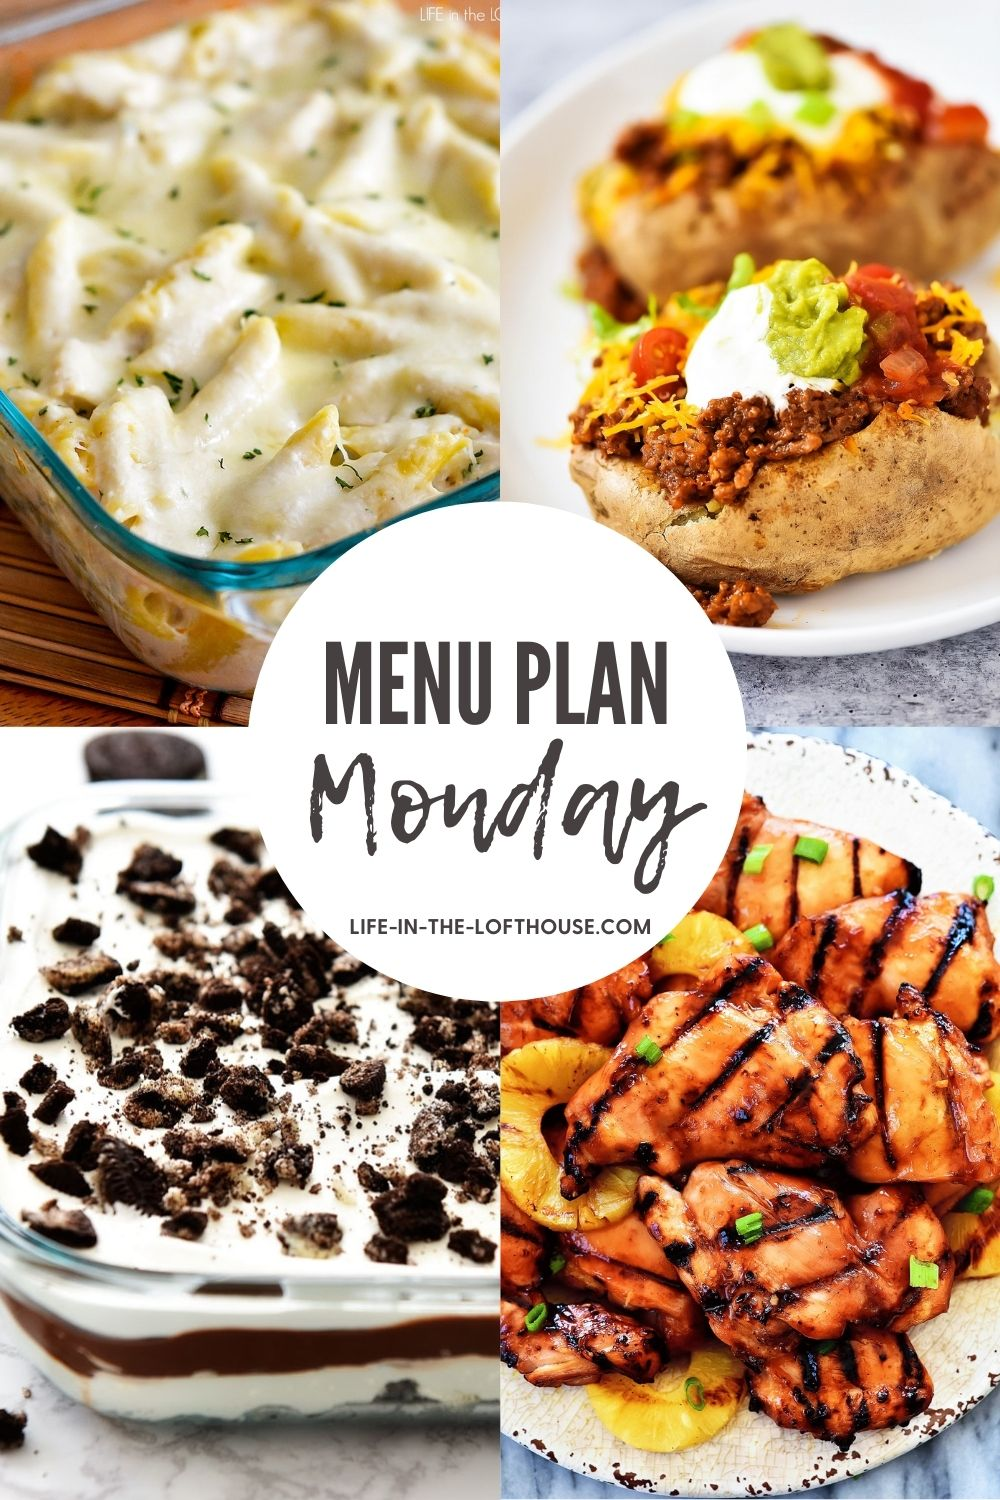 Menu Plan Monday is a list of dinner ideas and one dessert for the week.